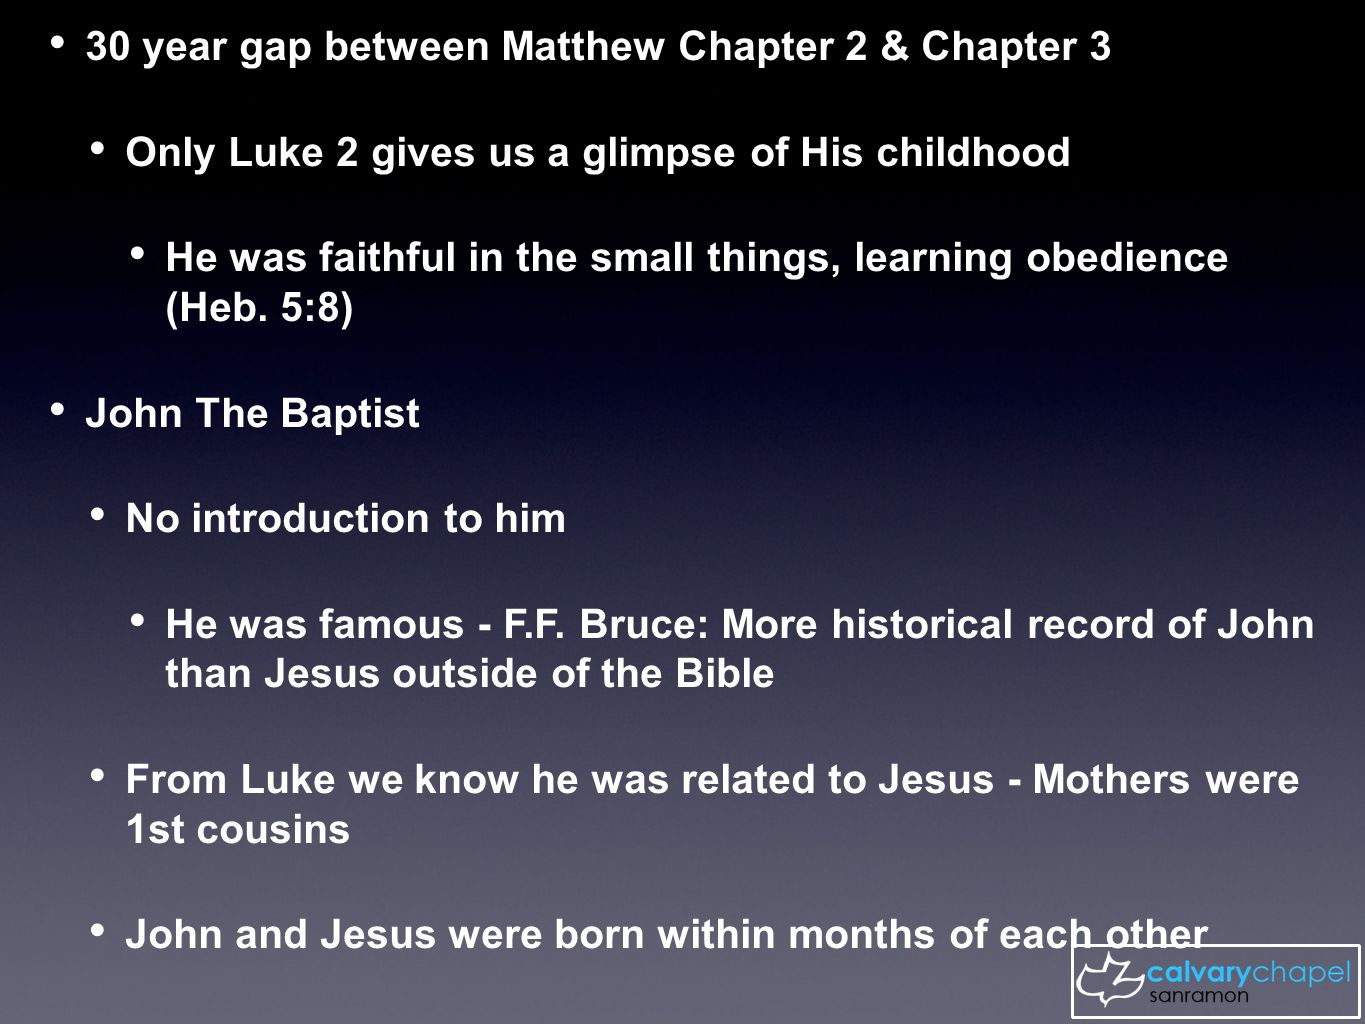 an introduction to the life of john the baptist The gospel of matthew the death of john the baptist (14:1-12)  introduction 1 a sad story in the bible is that of the death of john the  baptist a.